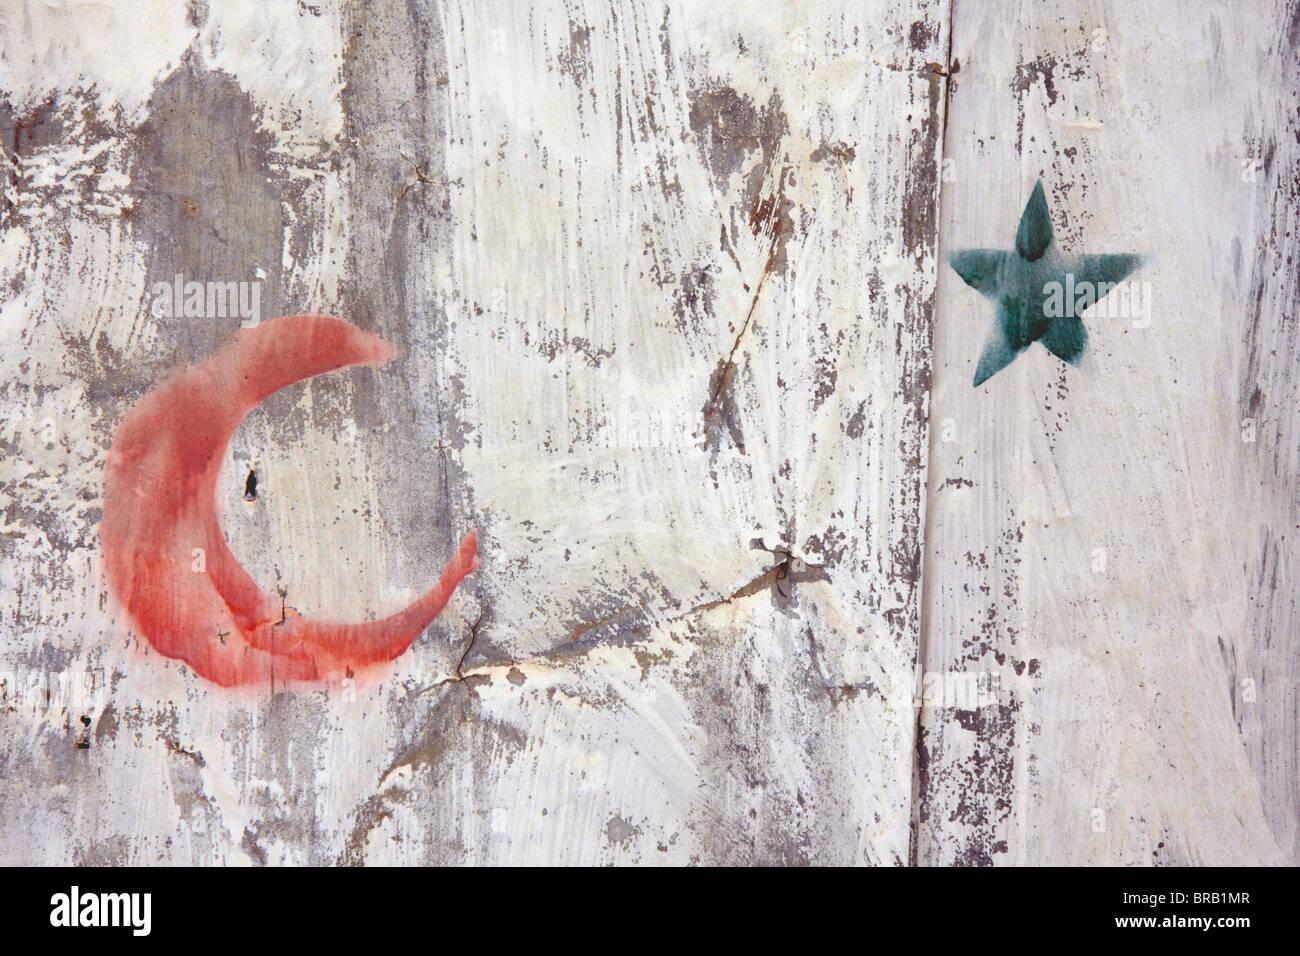 Muslim star and crescent spray-painted with a stencil on a metal ...